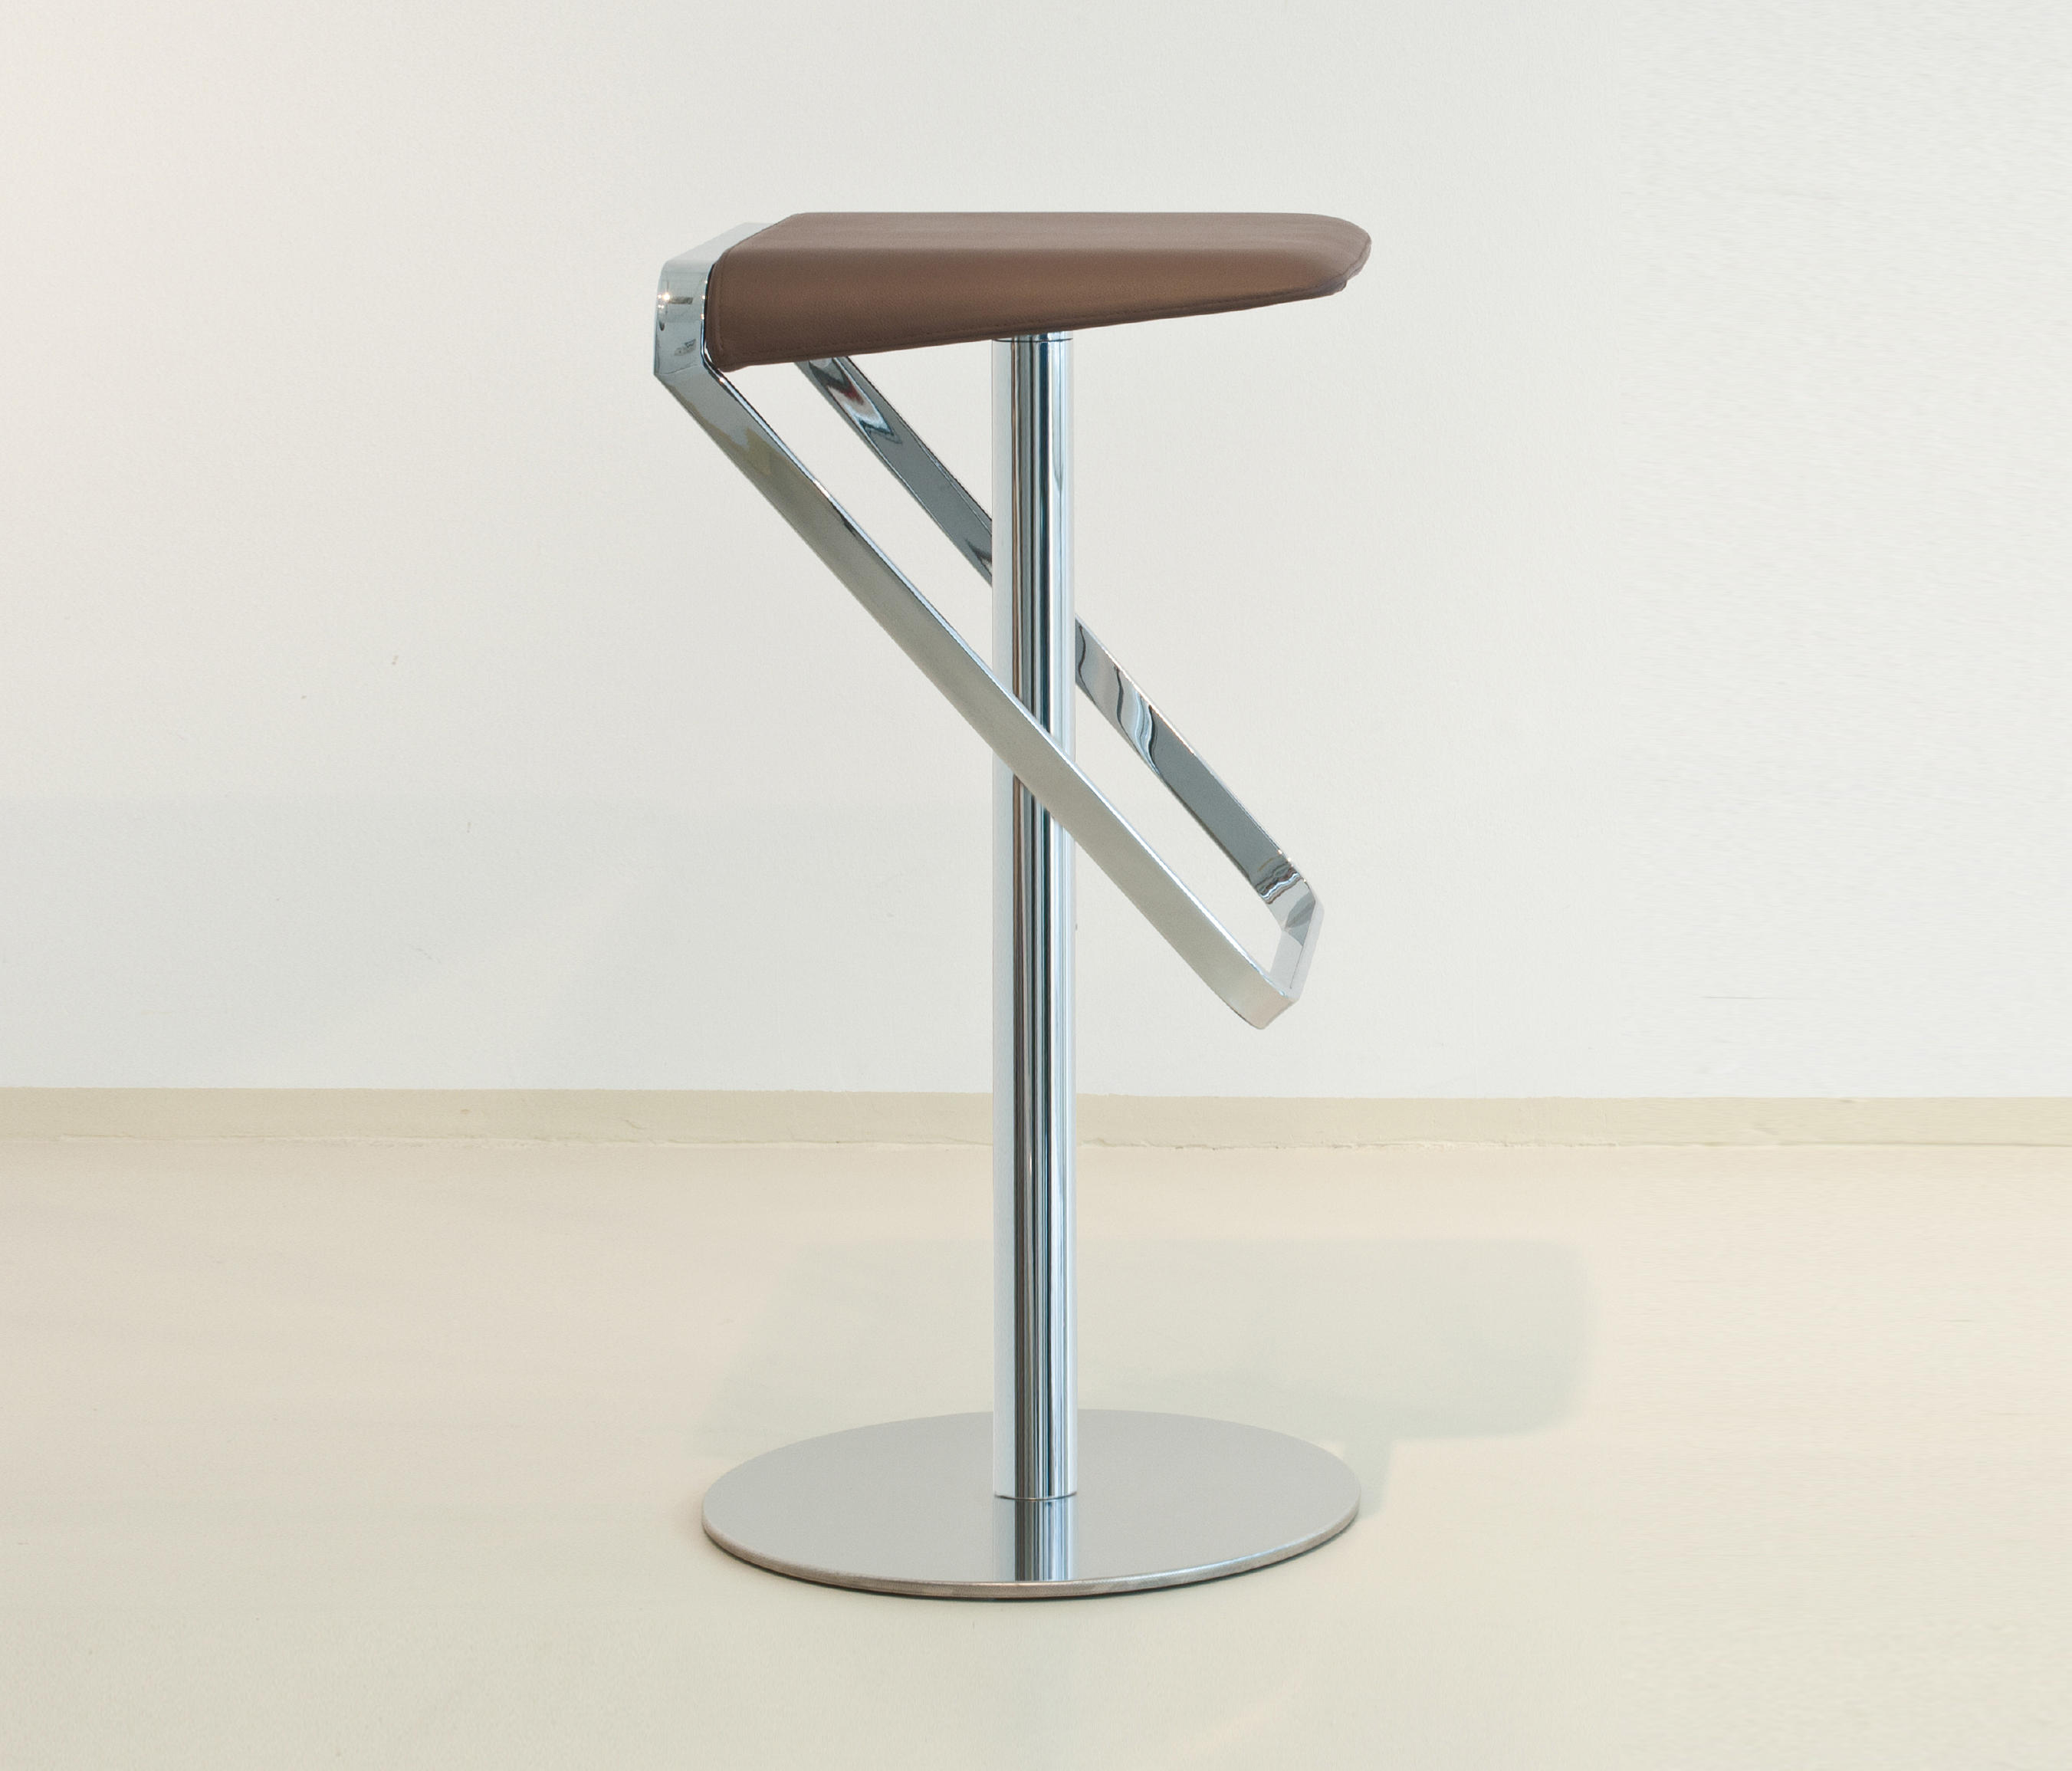 Sera Pelle Bar Stools From Formvorrat Architonic